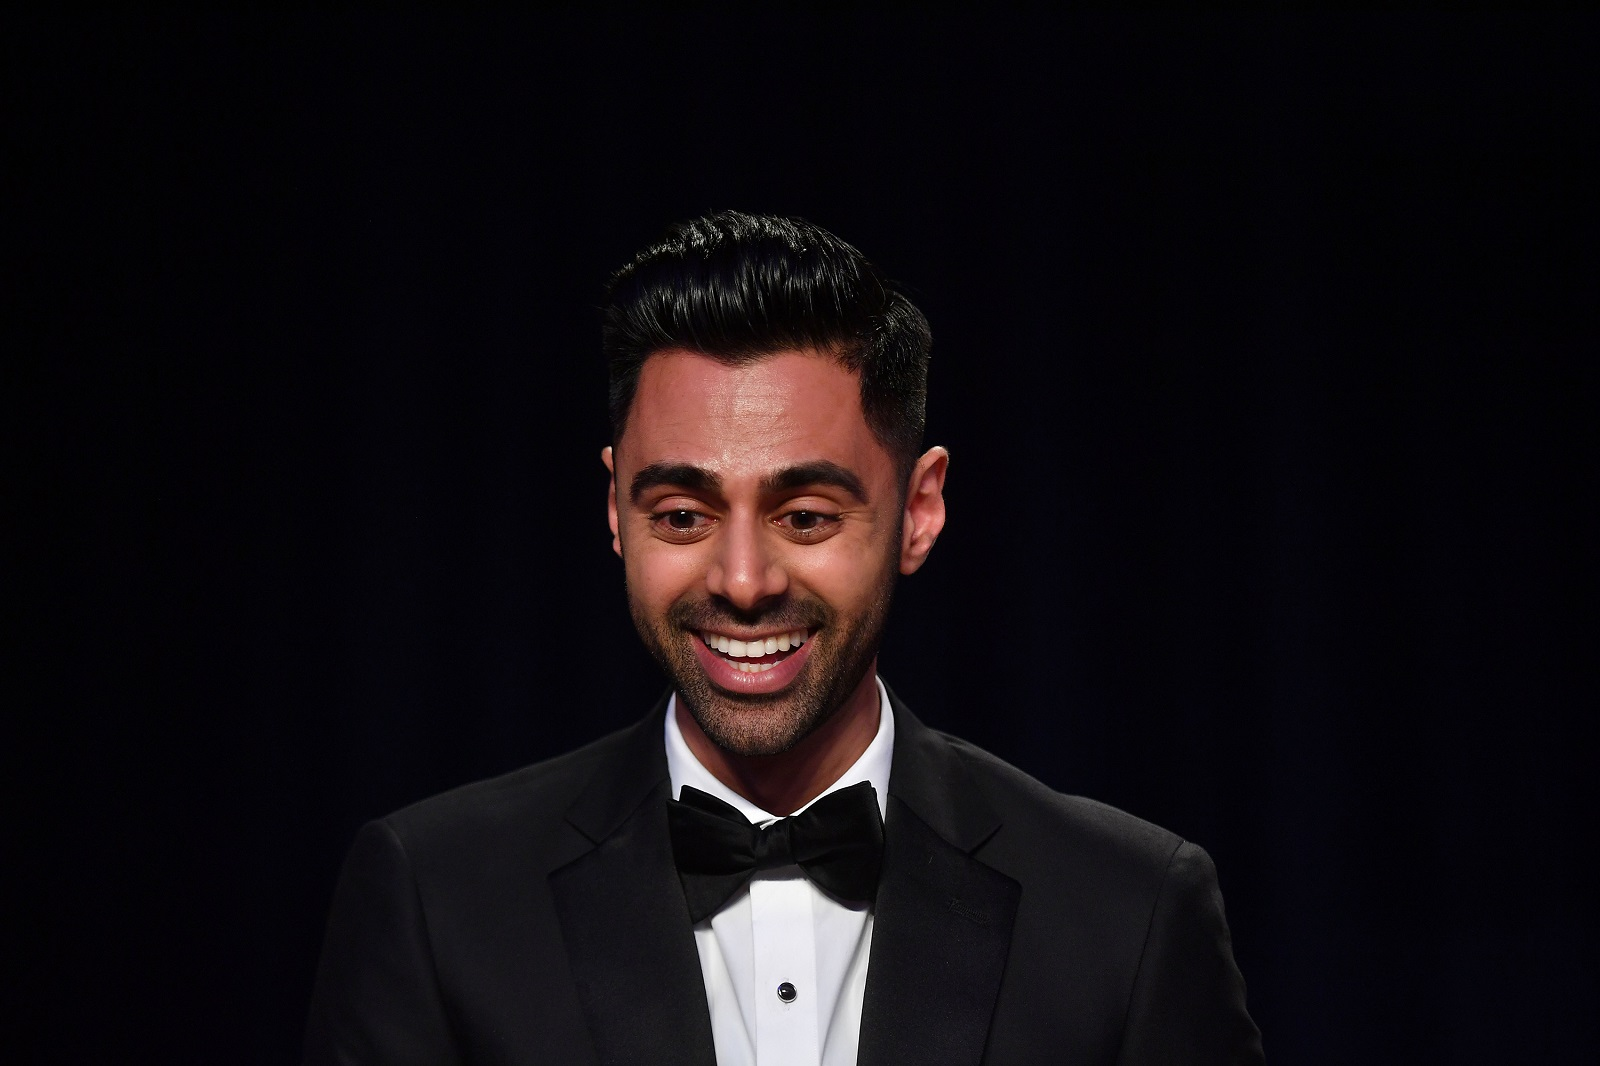 'Daily Show' correspondent Hasan Minhaj gave the keynote roast Saturday night at the White House Correspondents Dinner. (Photo by The Washington Post by Marvin Joseph)